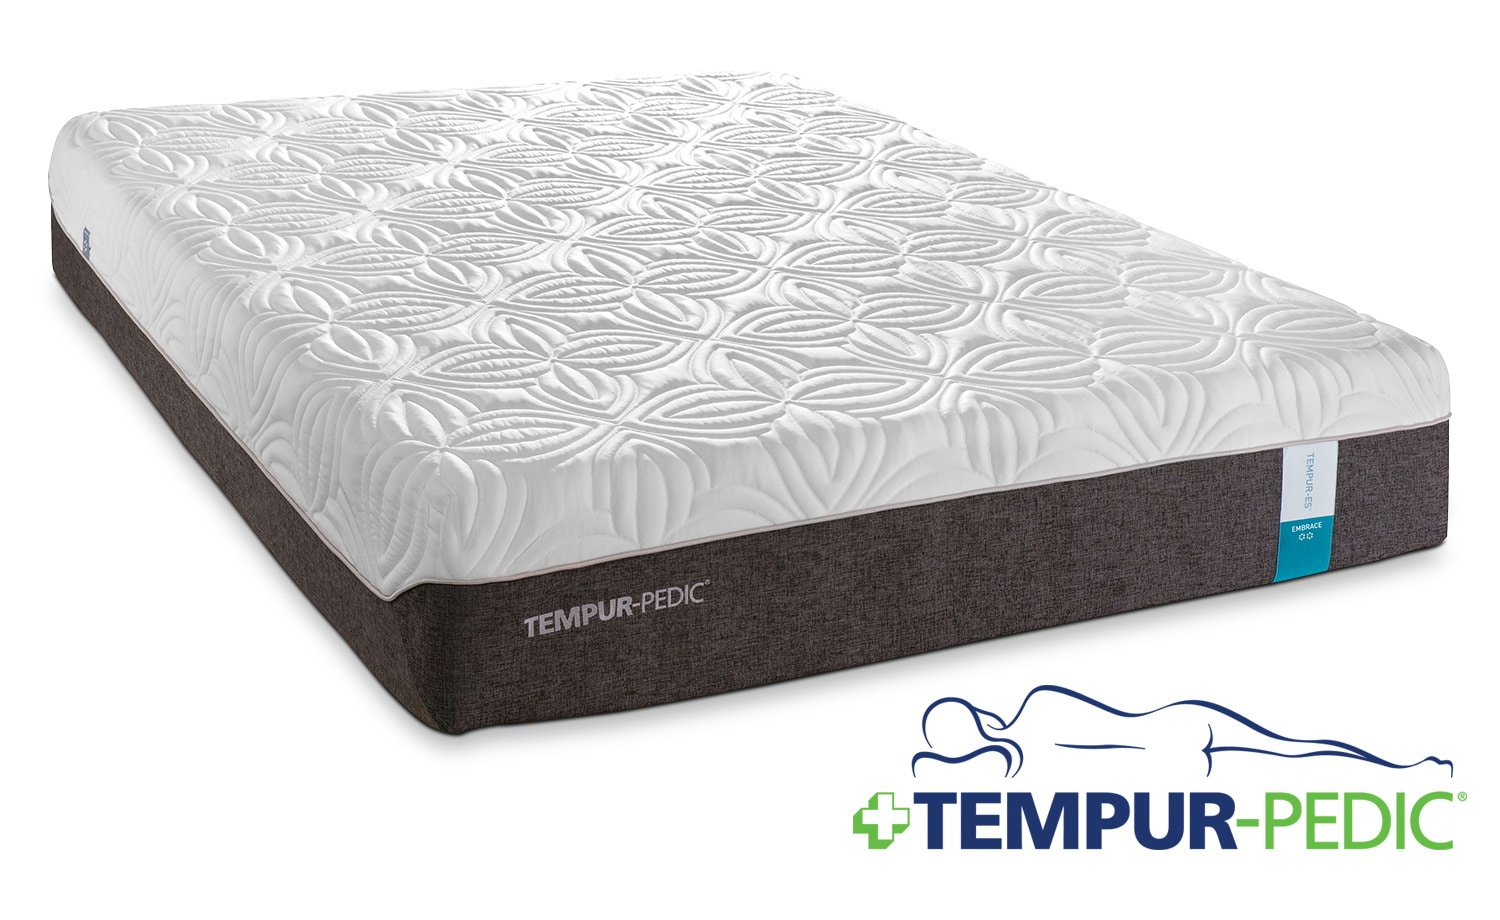 Tempur-Pedic Embrace 2.0 Plush King Mattress